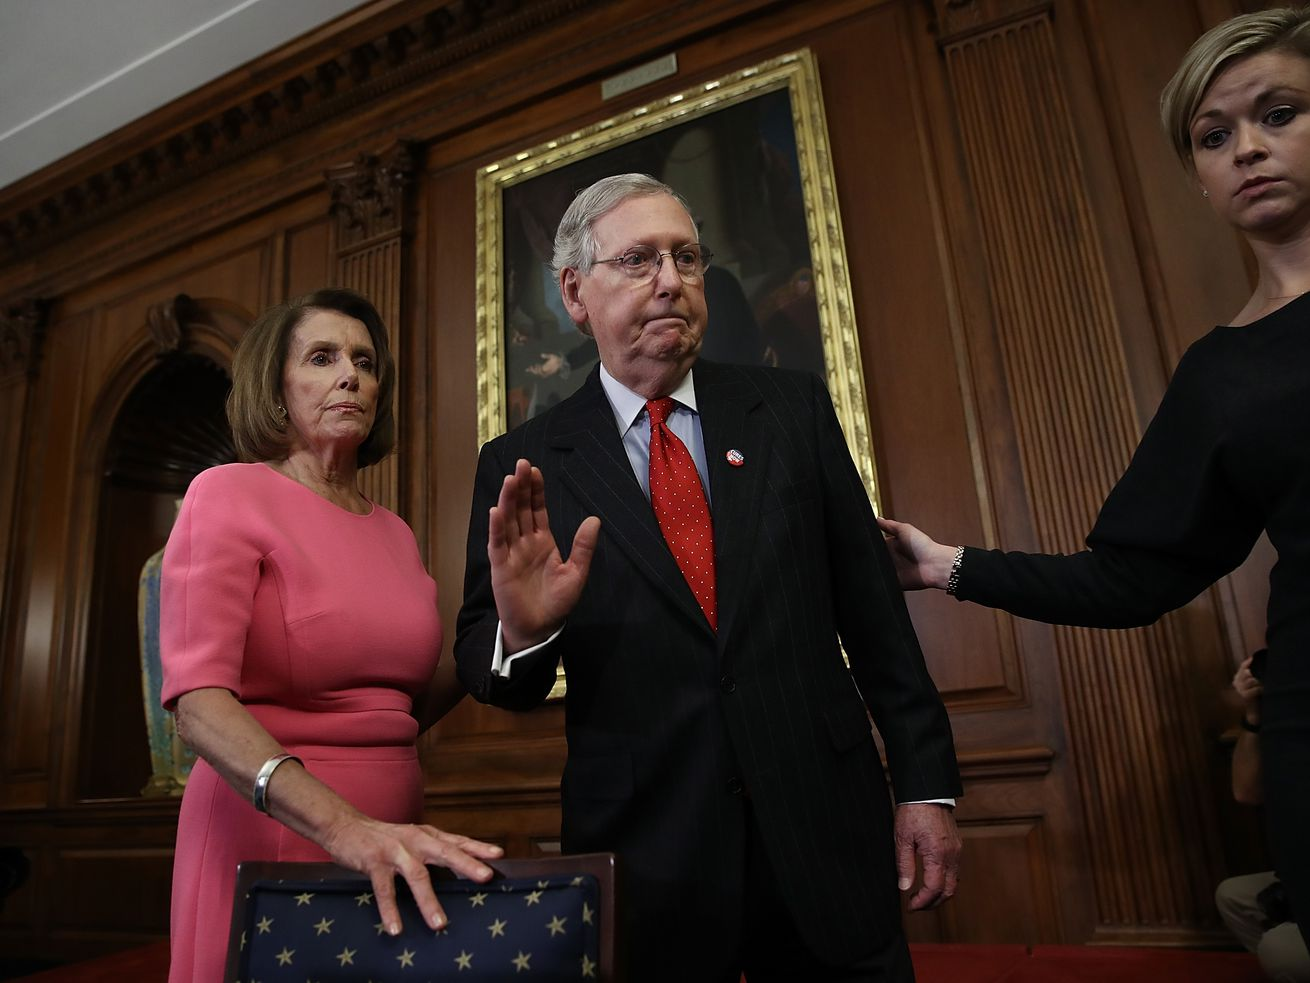 Senate Majority Leader Mitch McConnell waves goodbye after speaking with House Speaker Nancy Pelosi at an event in 2016. The two leaders now must reach a deal on humanitarian aid to the border.